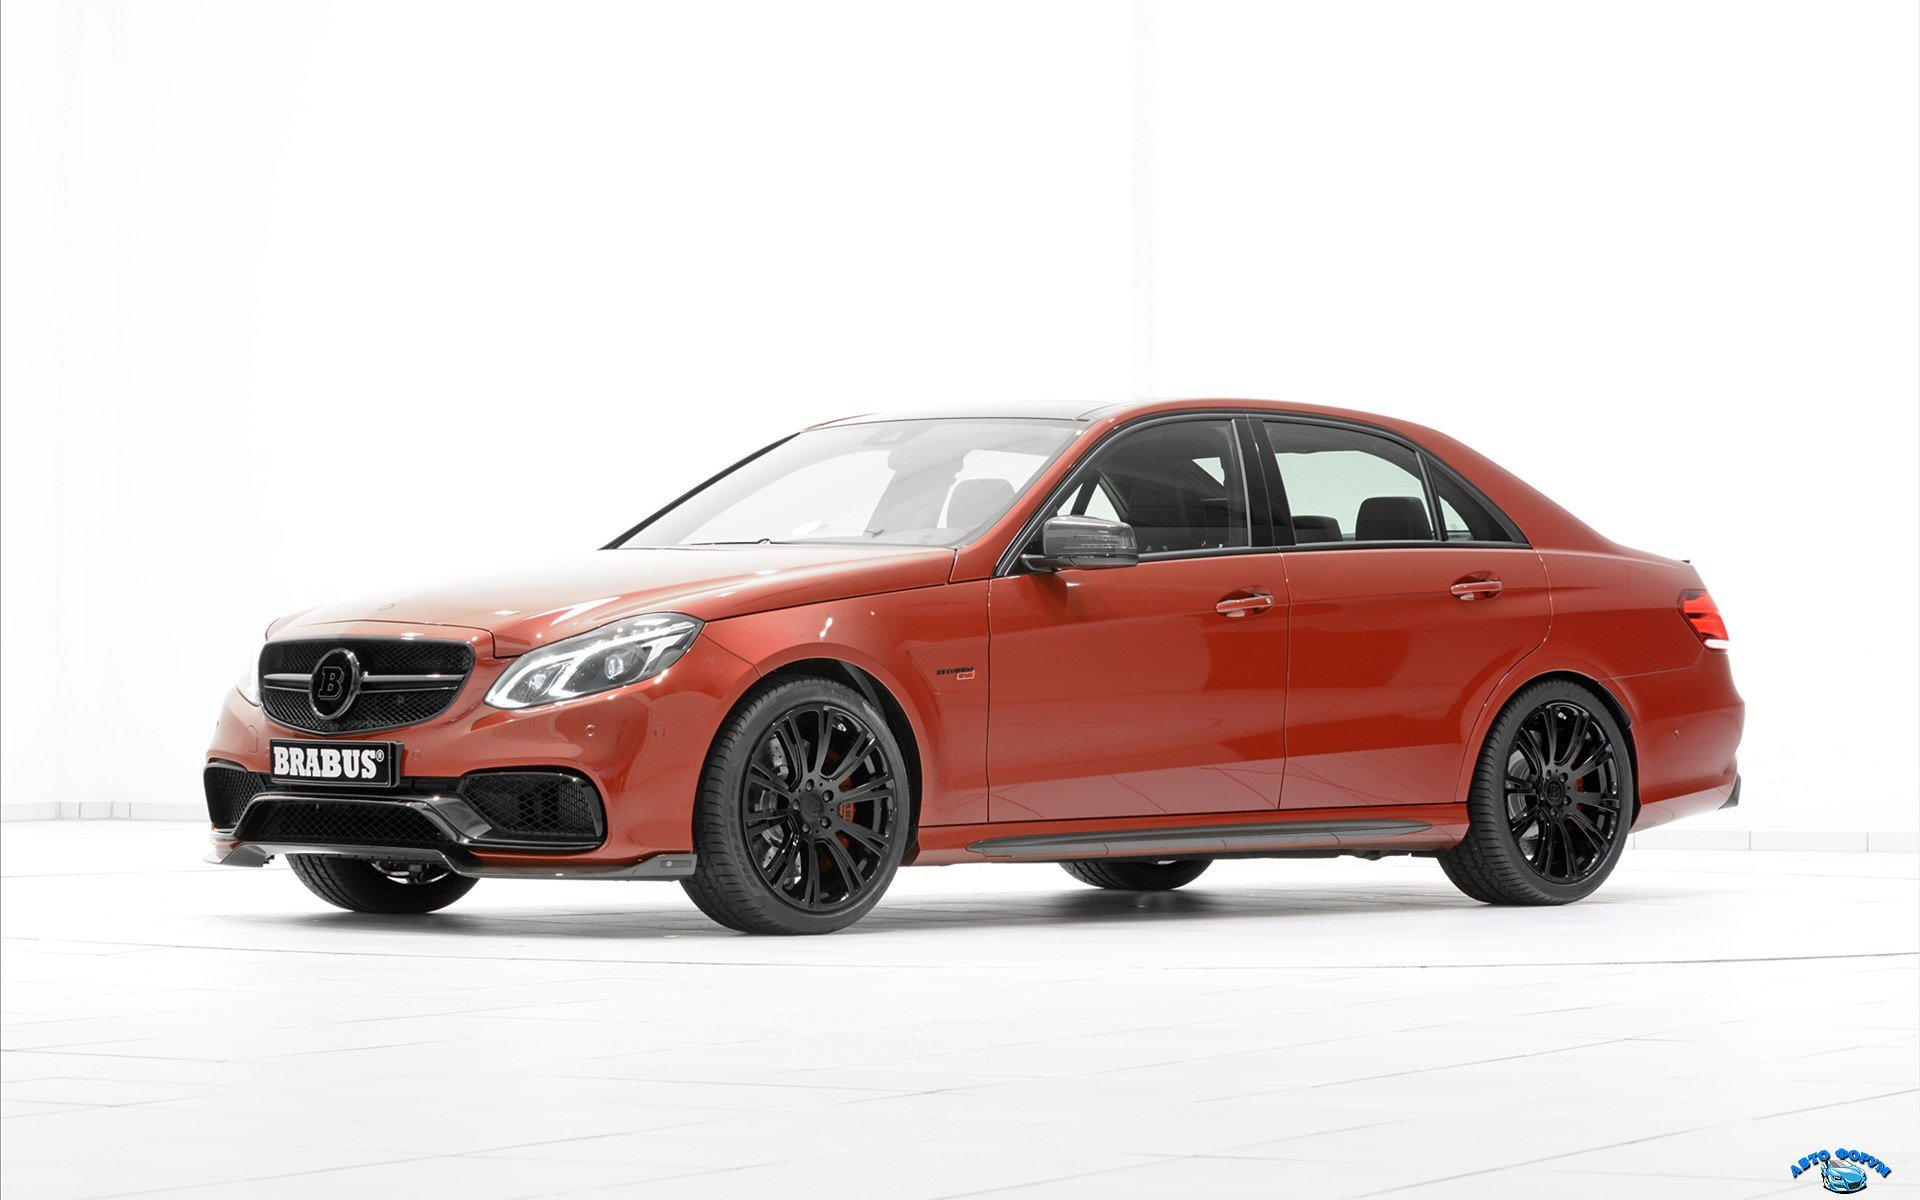 Brabus-850-6-0-Biturbo-2014-widescreen-33.jpg